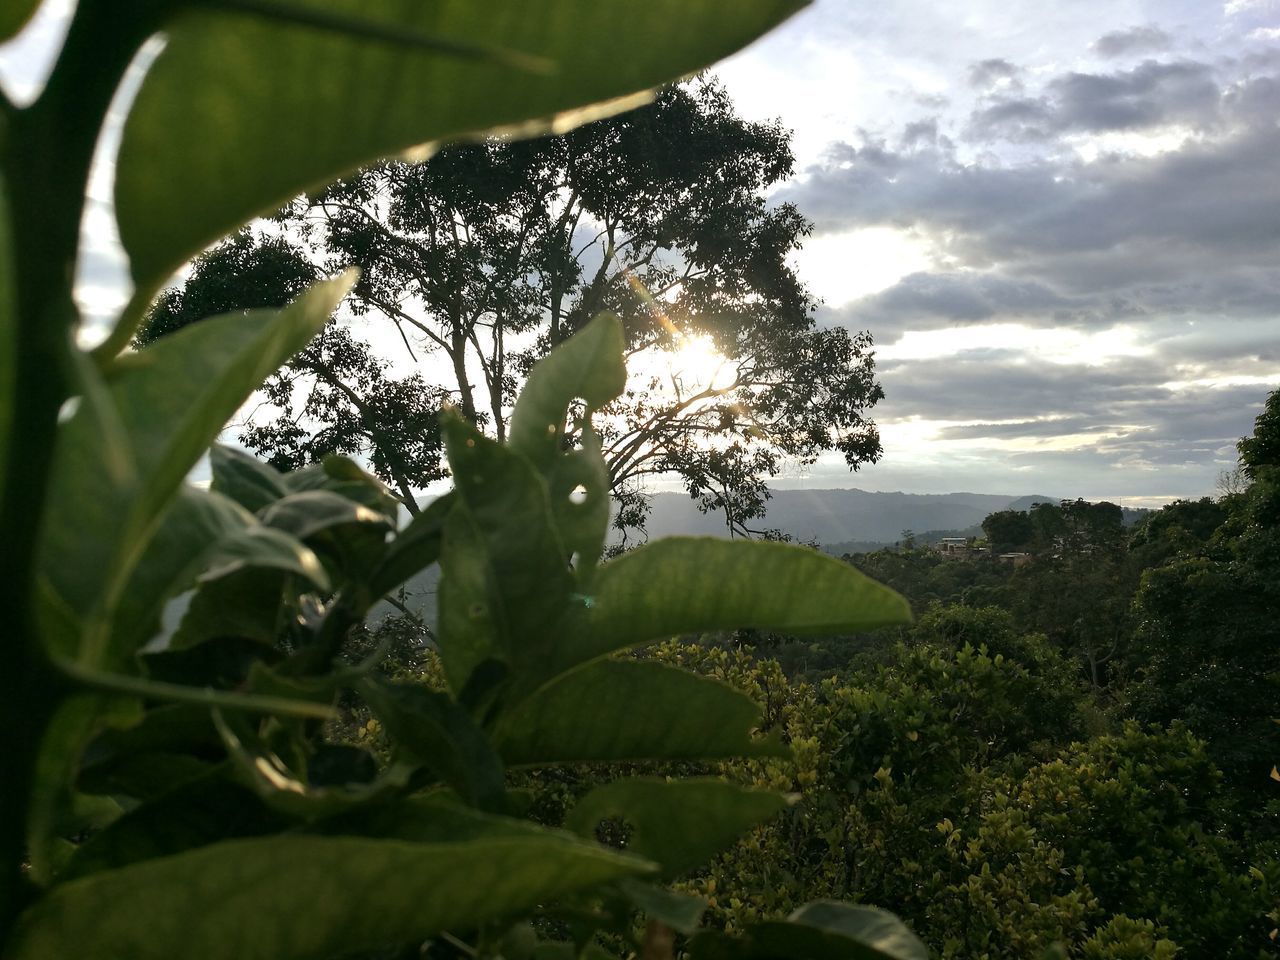 growth, tree, nature, leaf, beauty in nature, green color, plant, agriculture, no people, day, tranquility, outdoors, scenics, banana tree, sky, rural scene, close-up, tea crop, freshness